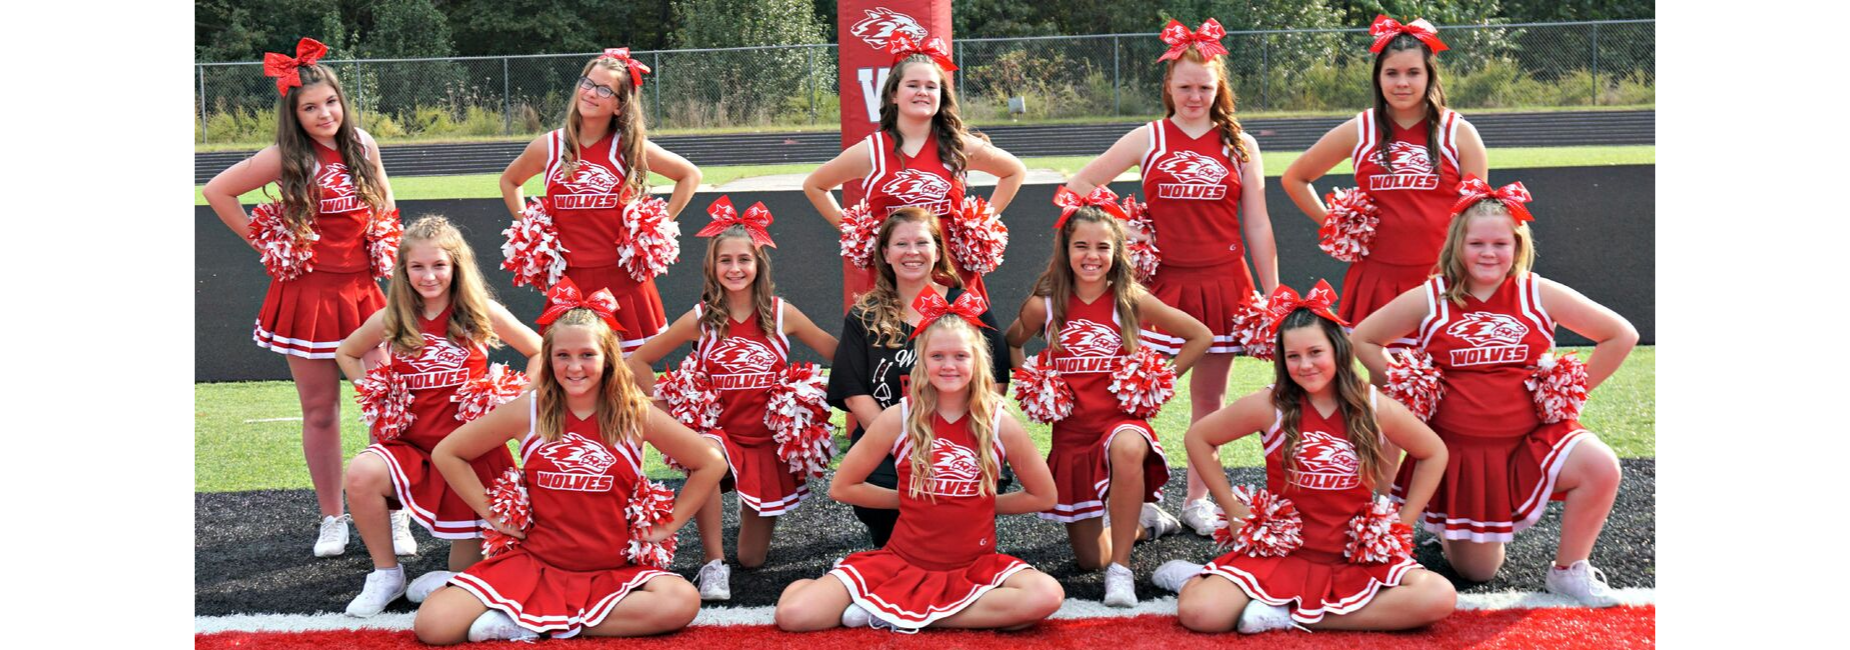 picture of cheerleading squad